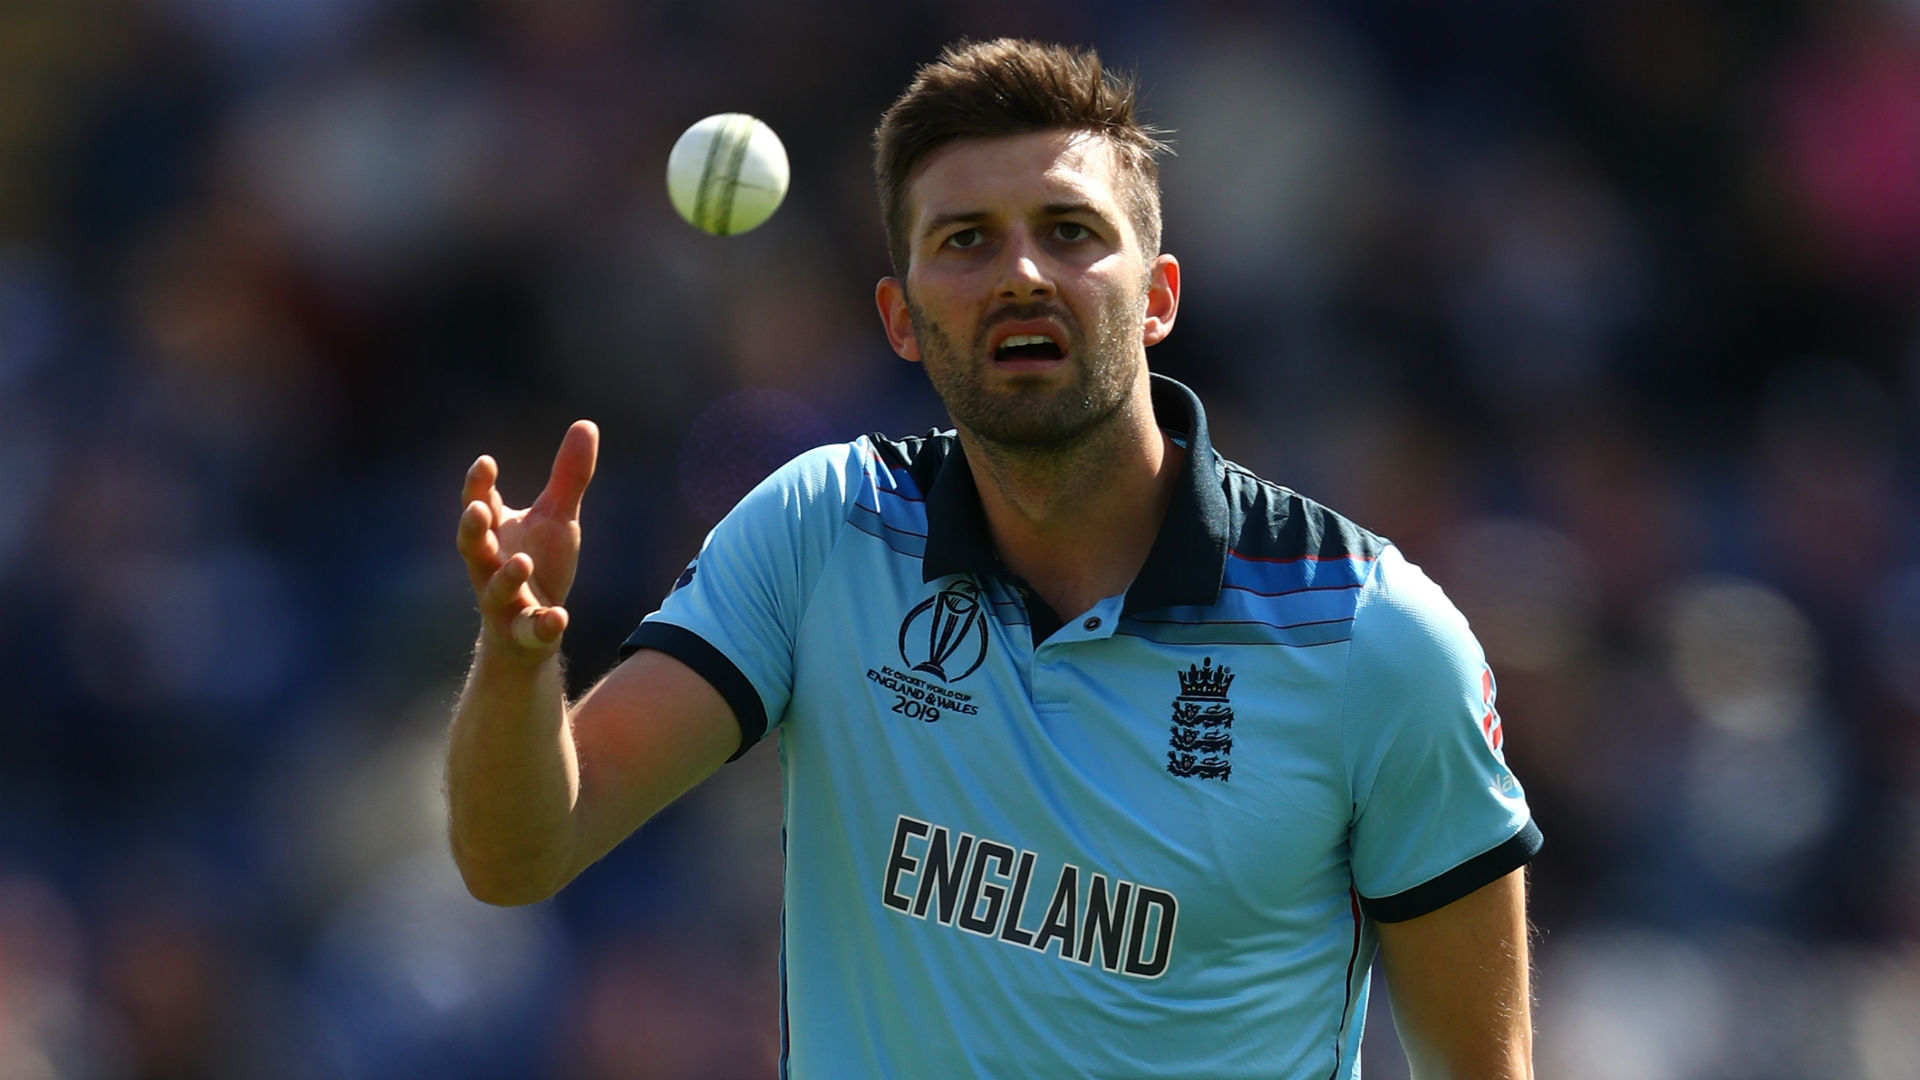 England's Wood a doubt for West Indies match, Buttler fully fit